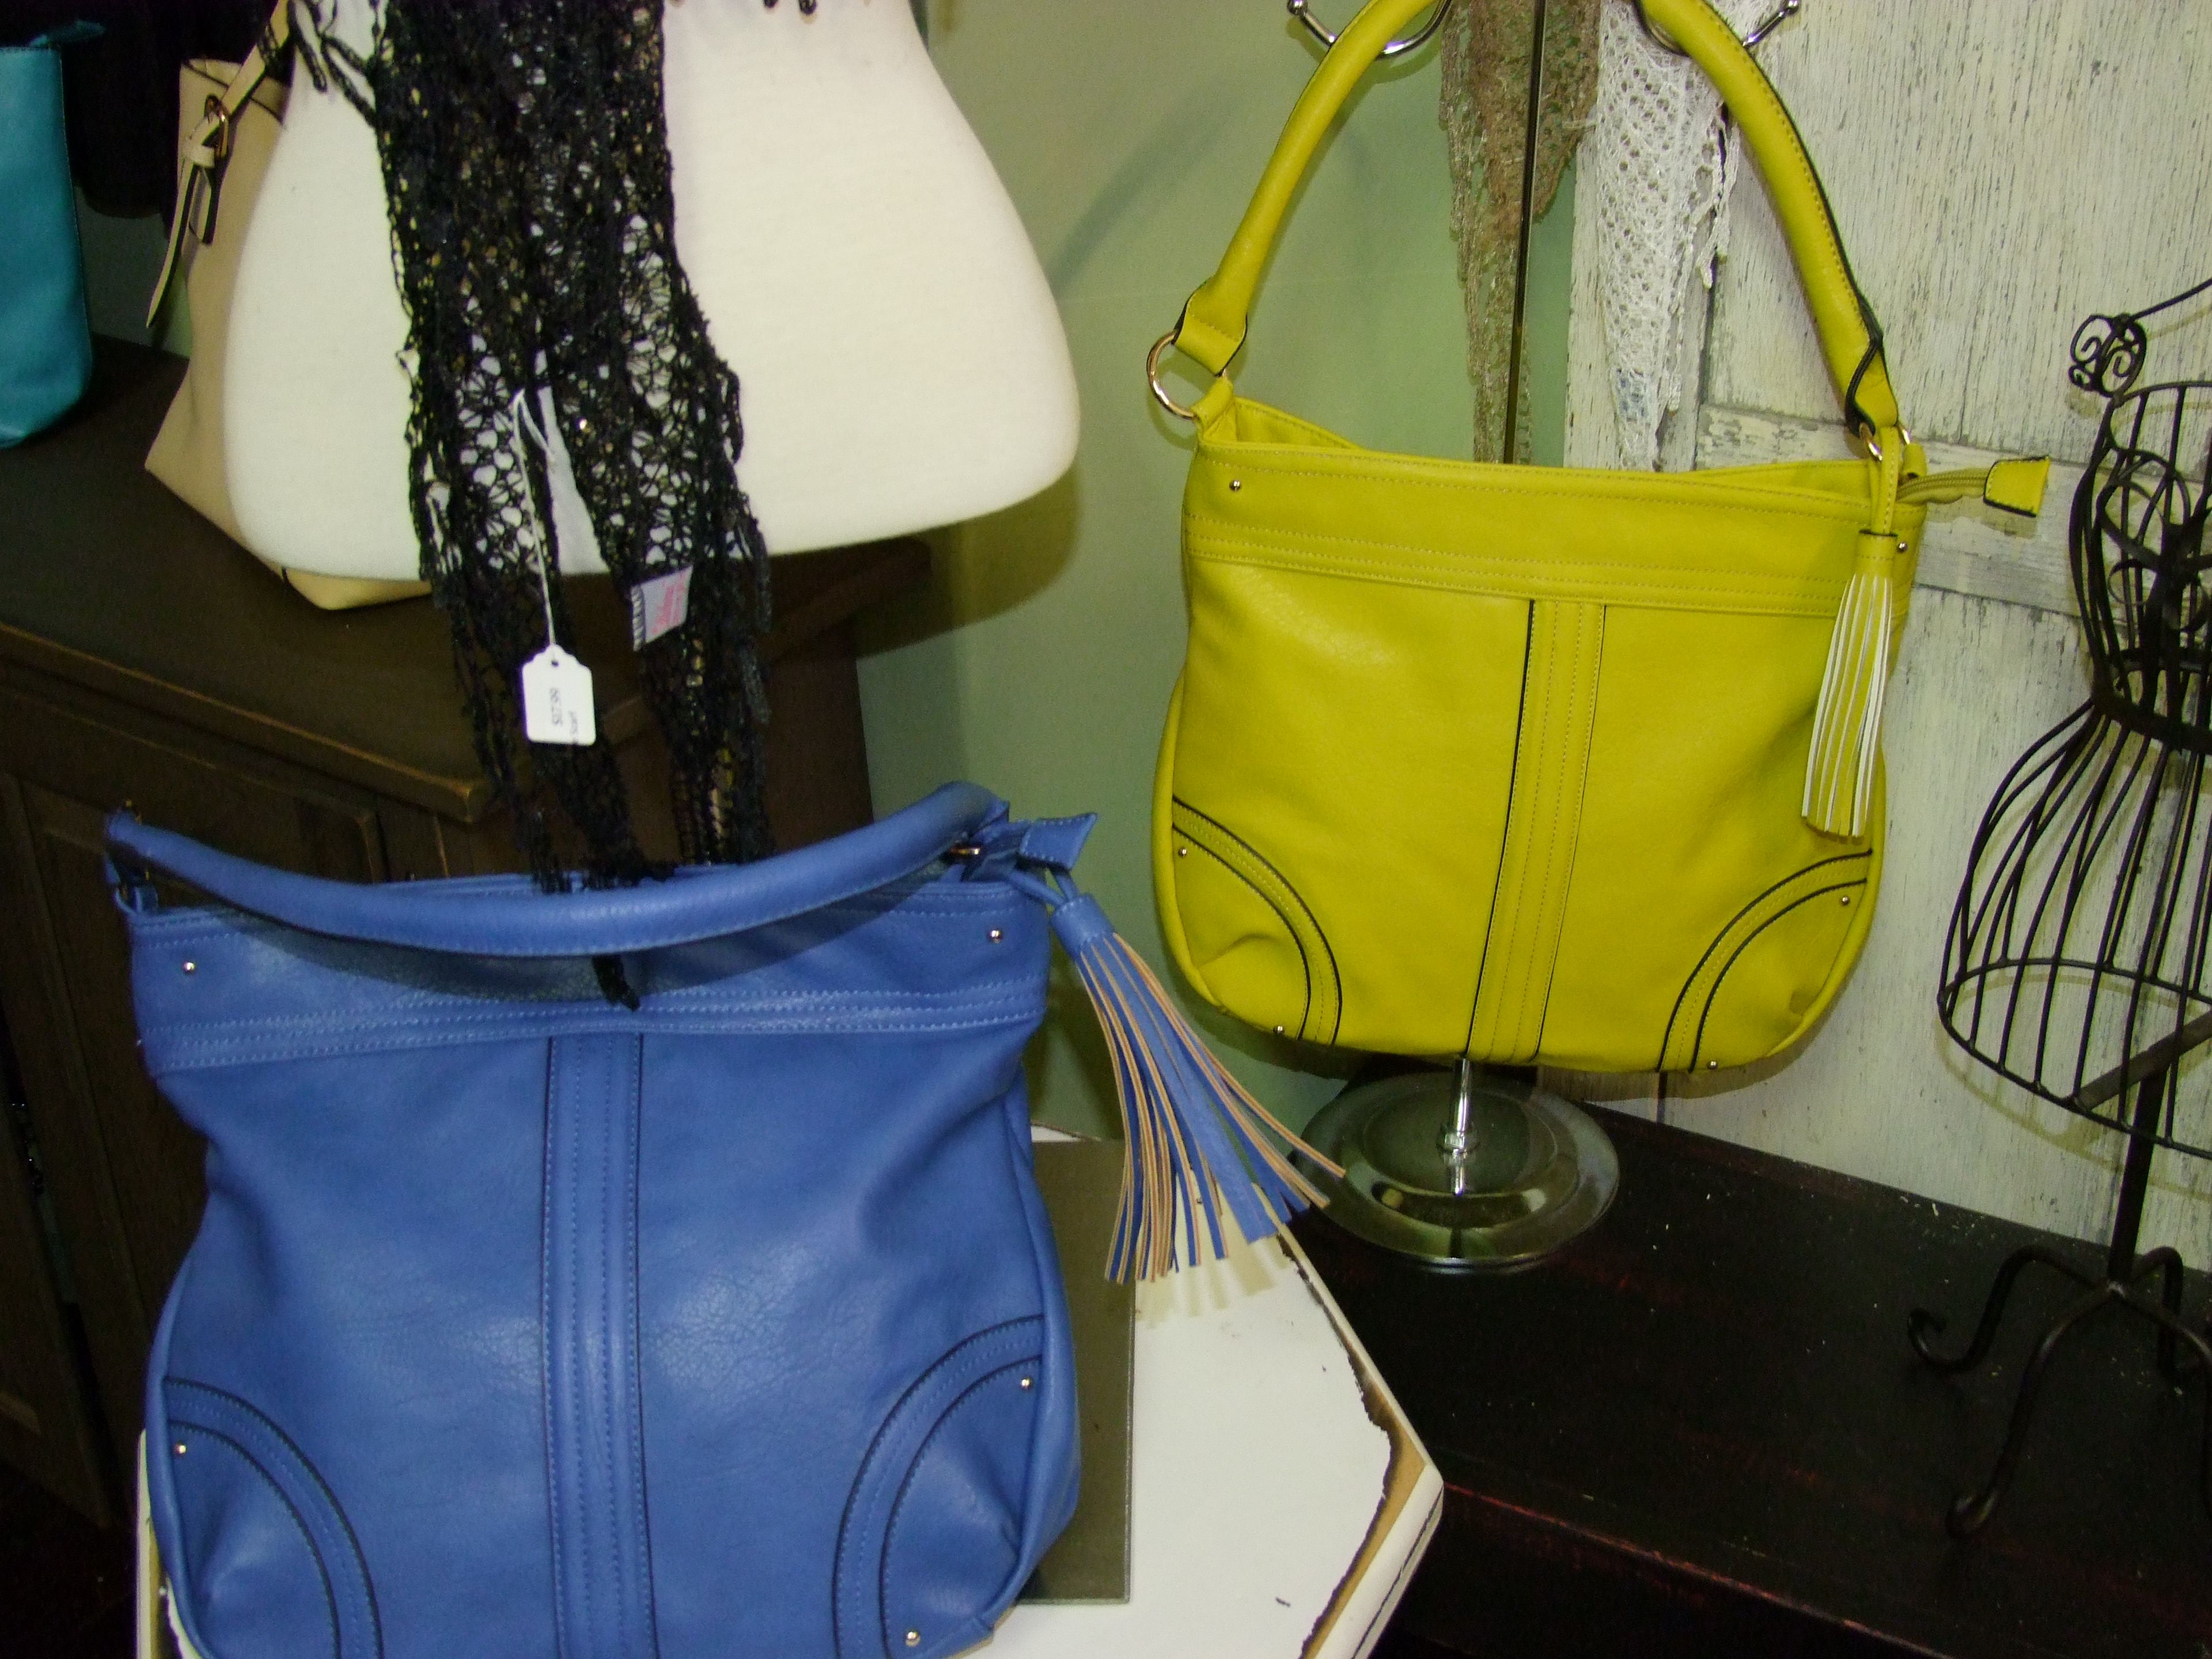 bd1a8730fbbd Handbags from B. Lush by Passion